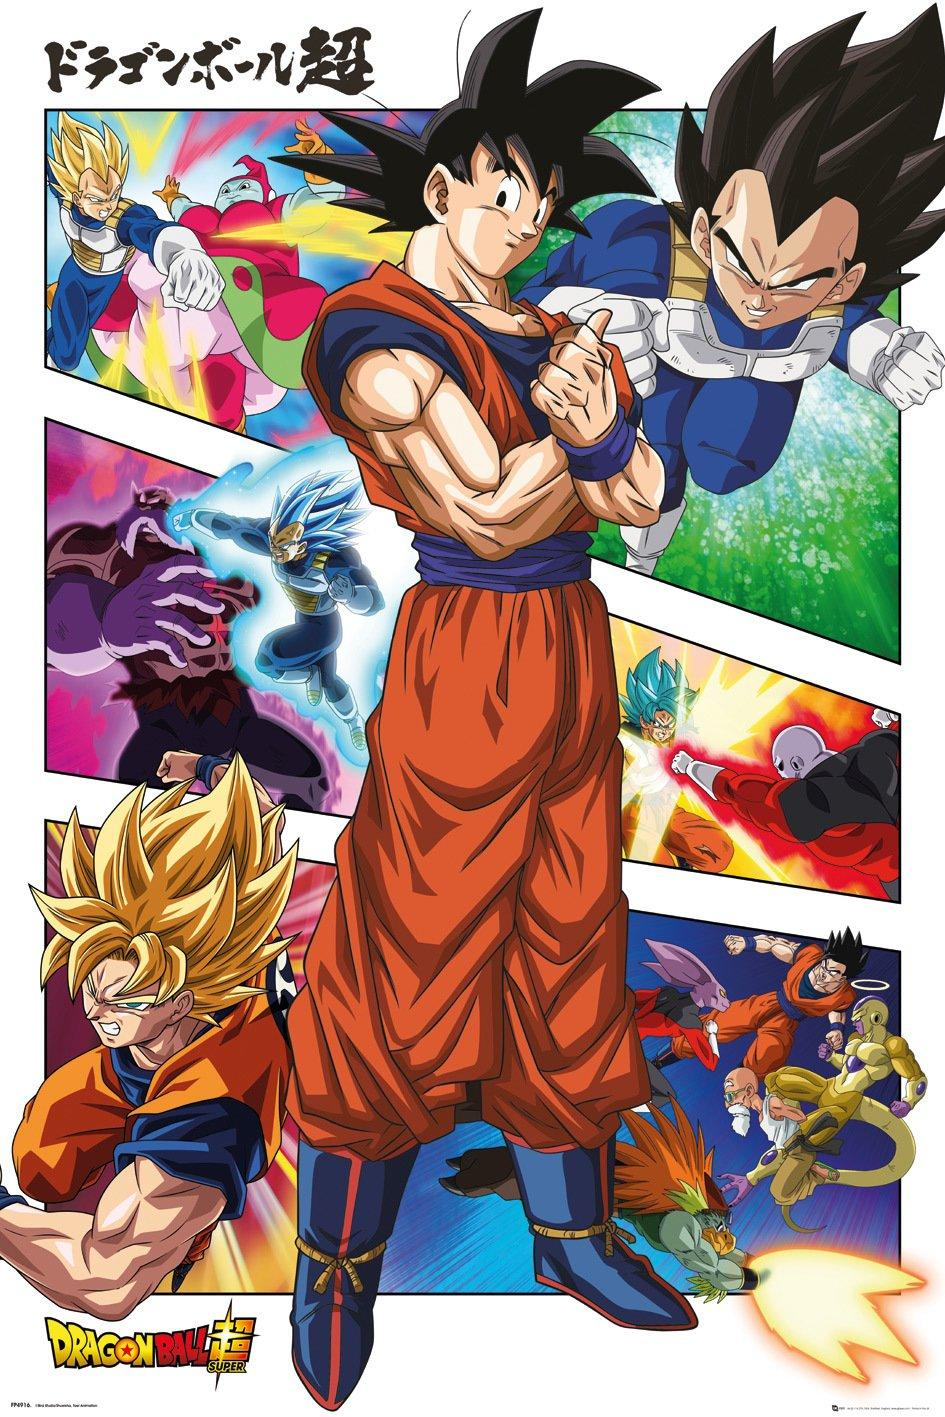 DRAGON BALL SUPER - Panels - Poster '61x91.5cm'_1